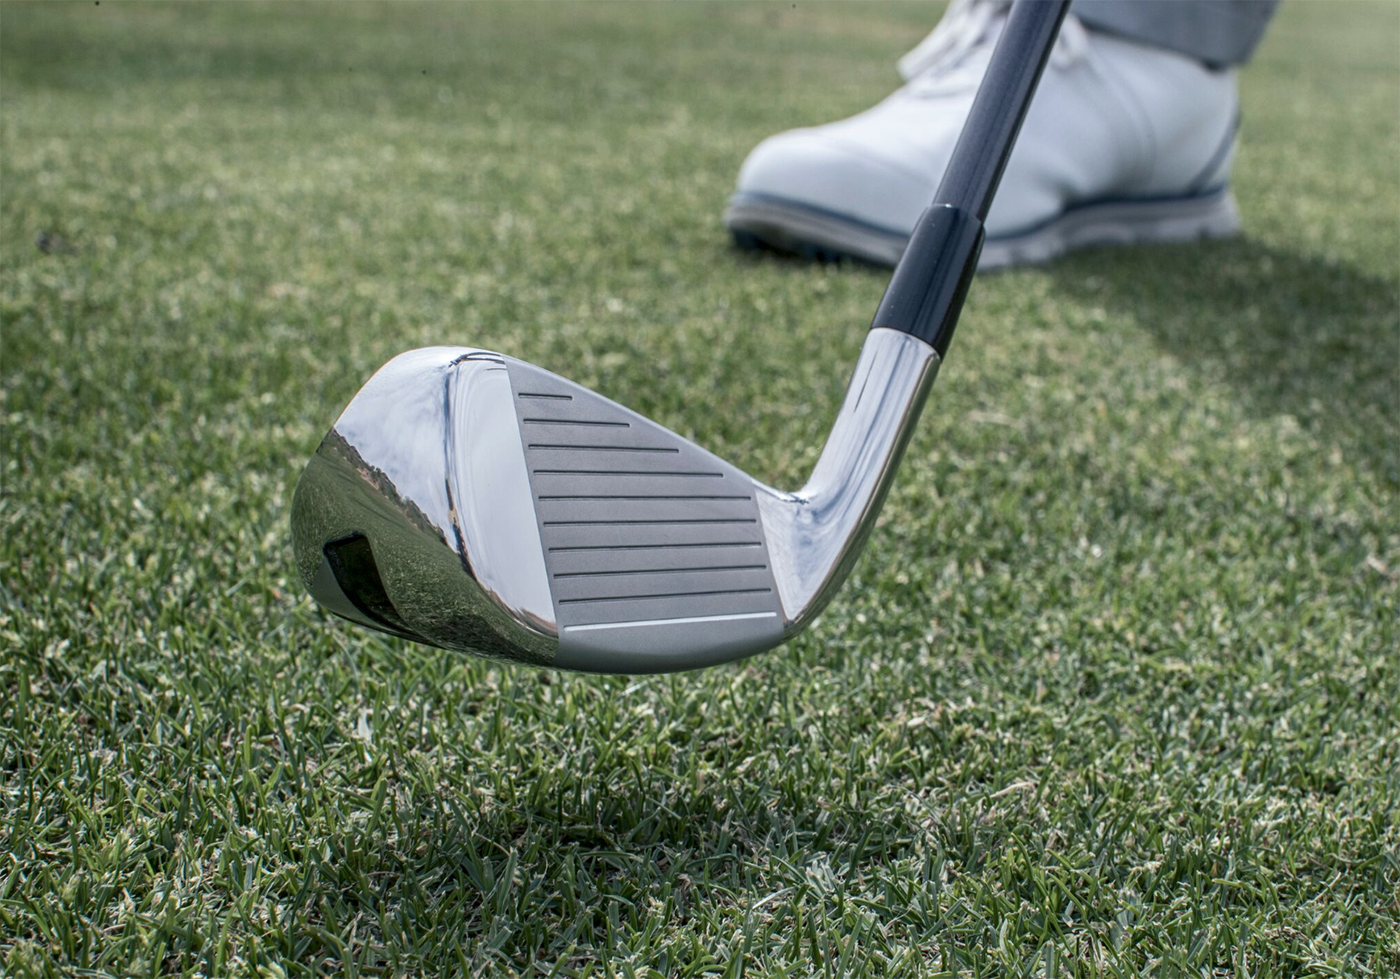 Cleveland Golf Announces New Launcher Woods and Irons ... on wrestling iron, steam iron, curling iron, travel iron,